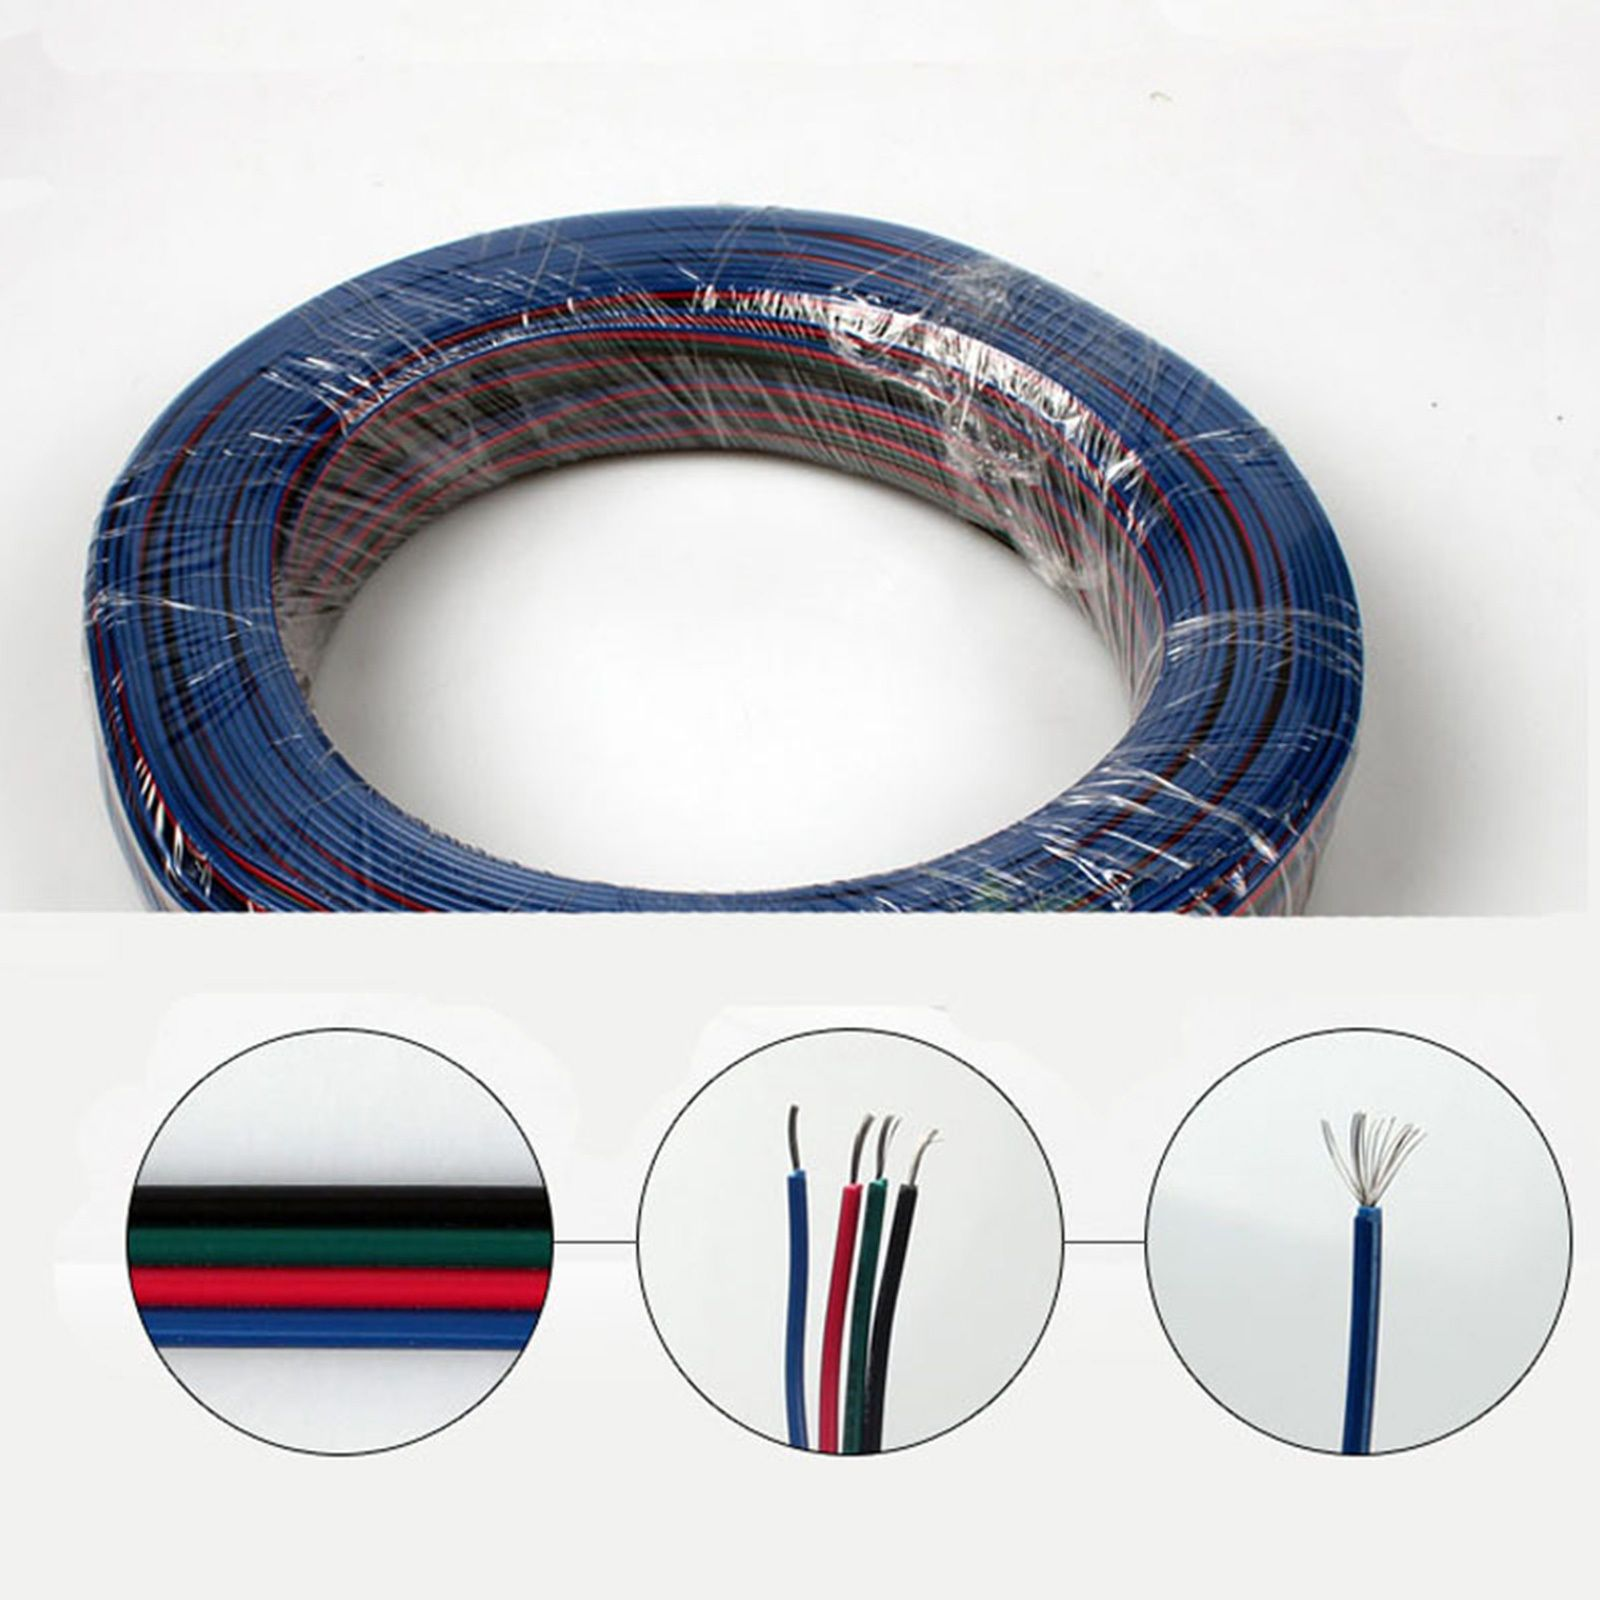 1 50m 4pin Rgb Extension Cable Wire Cord For 3528 5050 Smd Led Light Connector Strip Ebay Lots